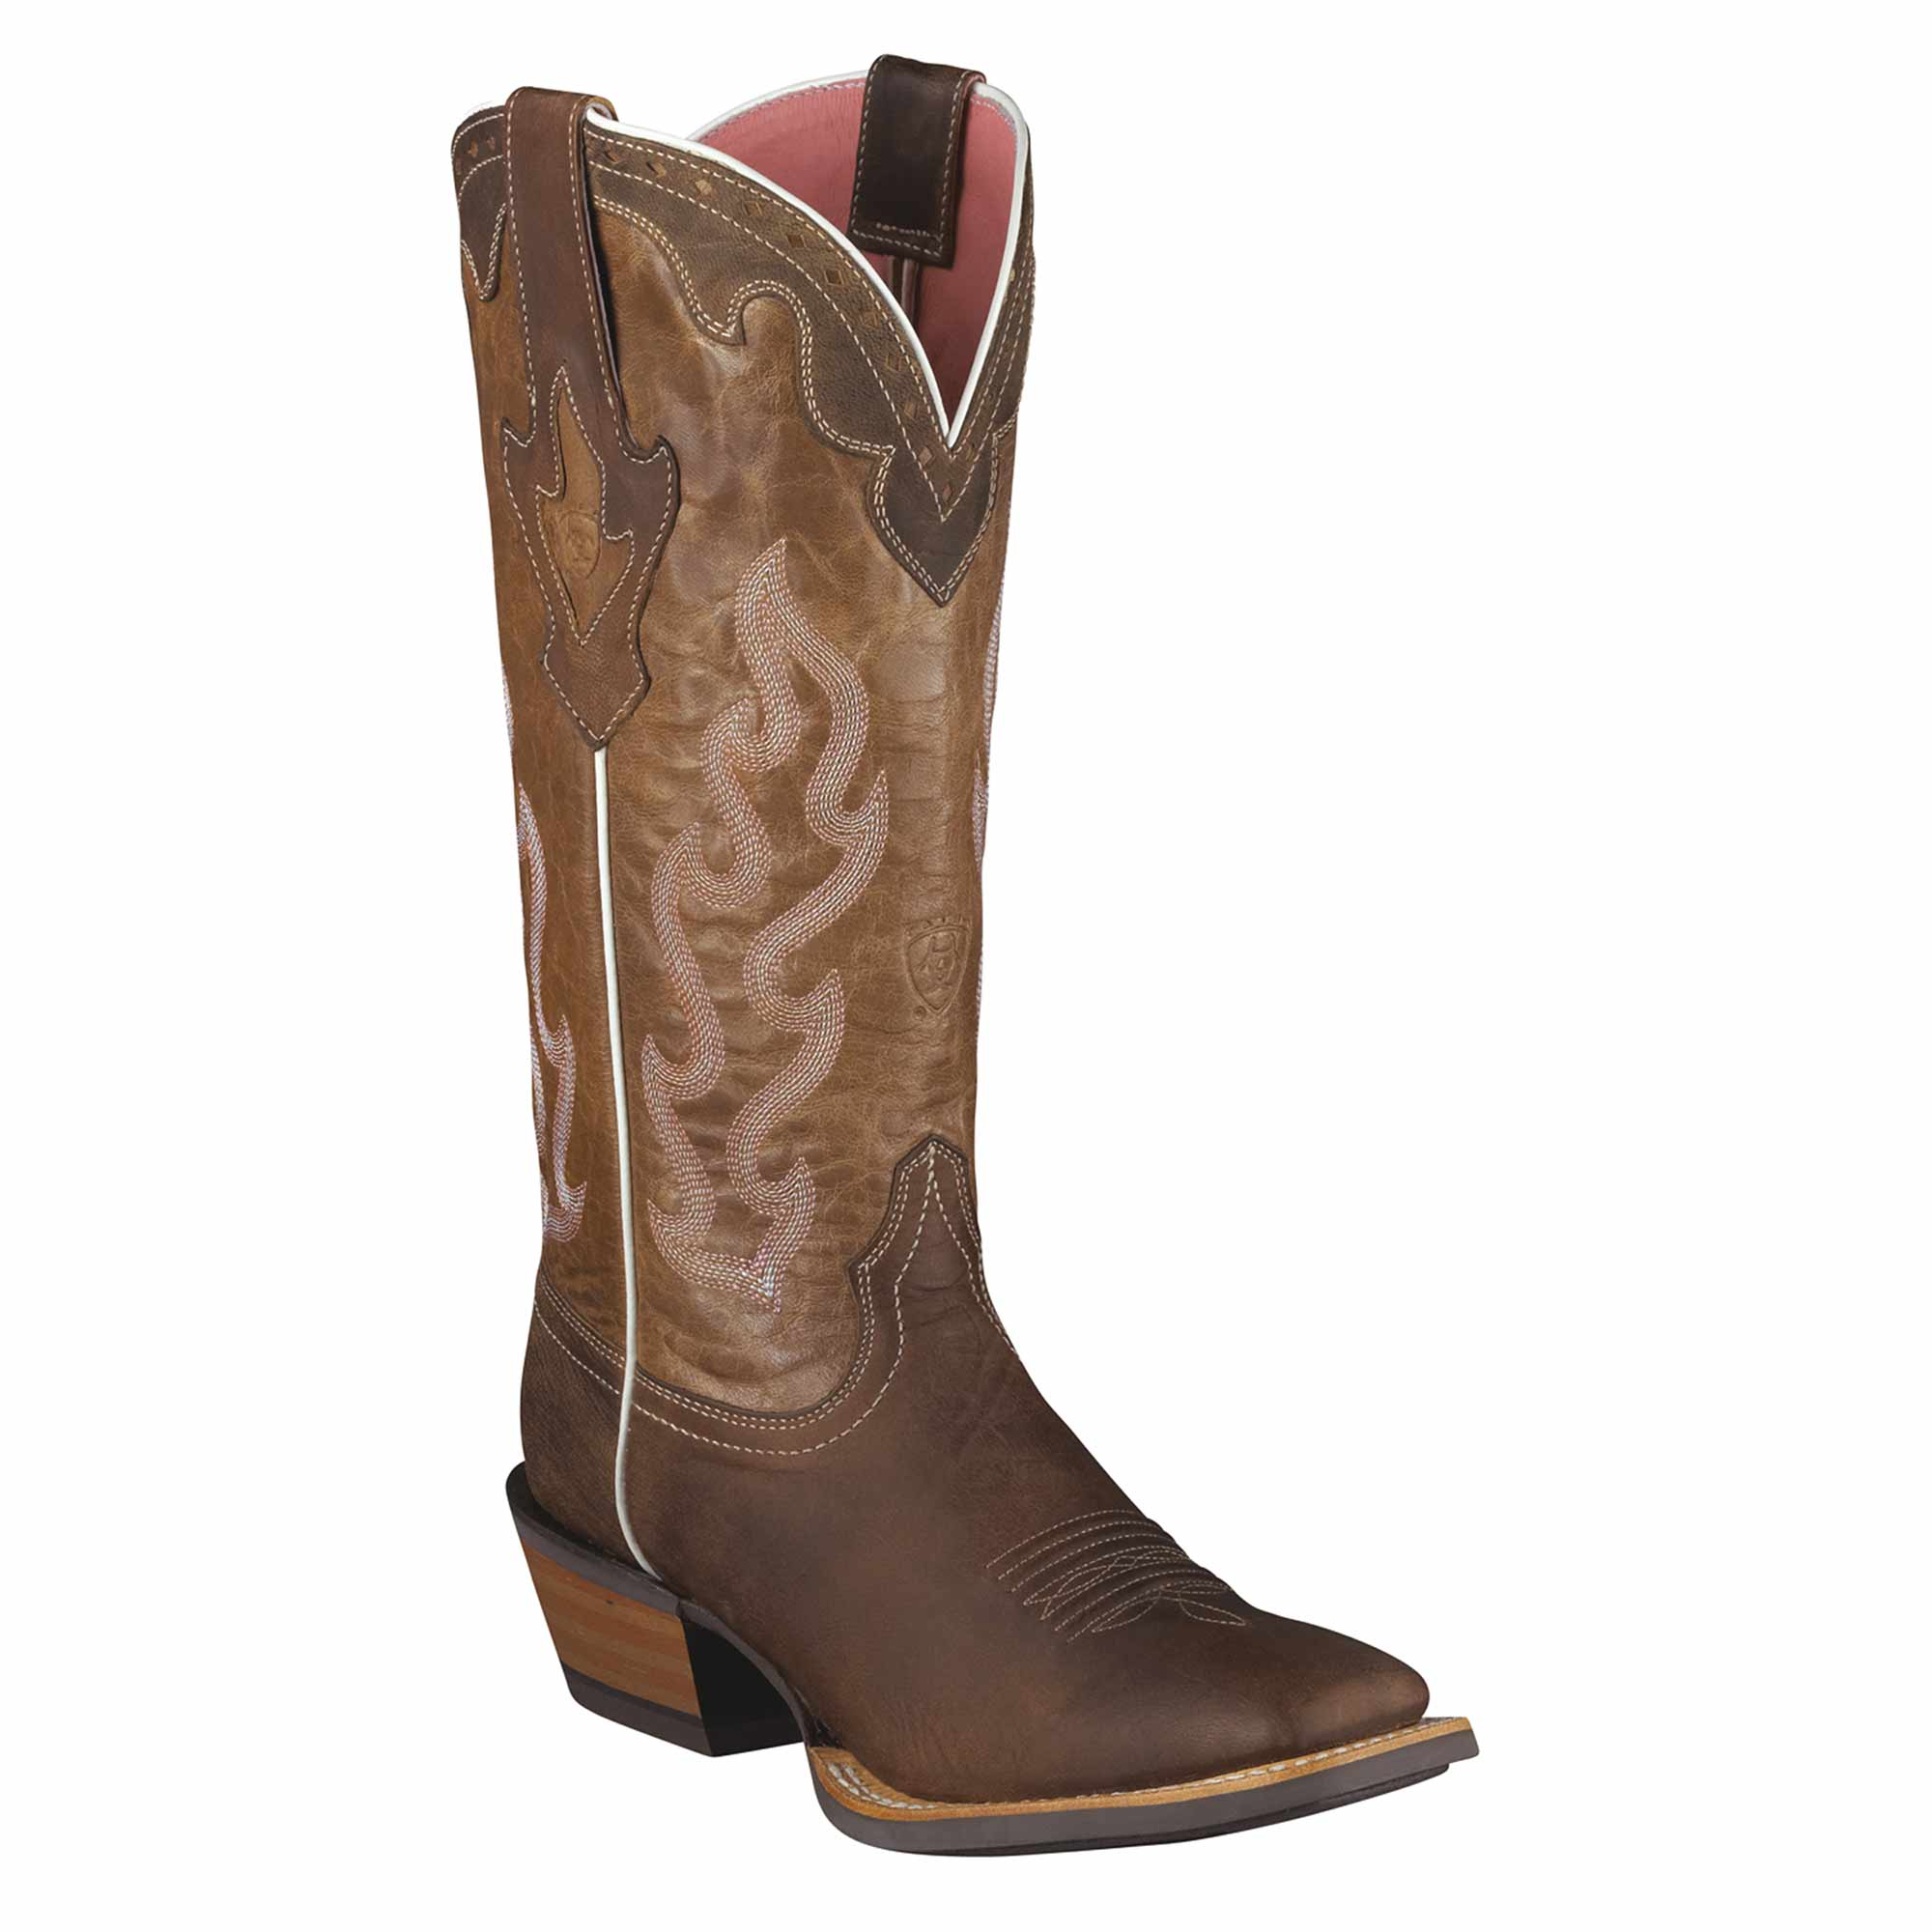 Ariat Western Boots Women S Crossfire Caliente Weathered